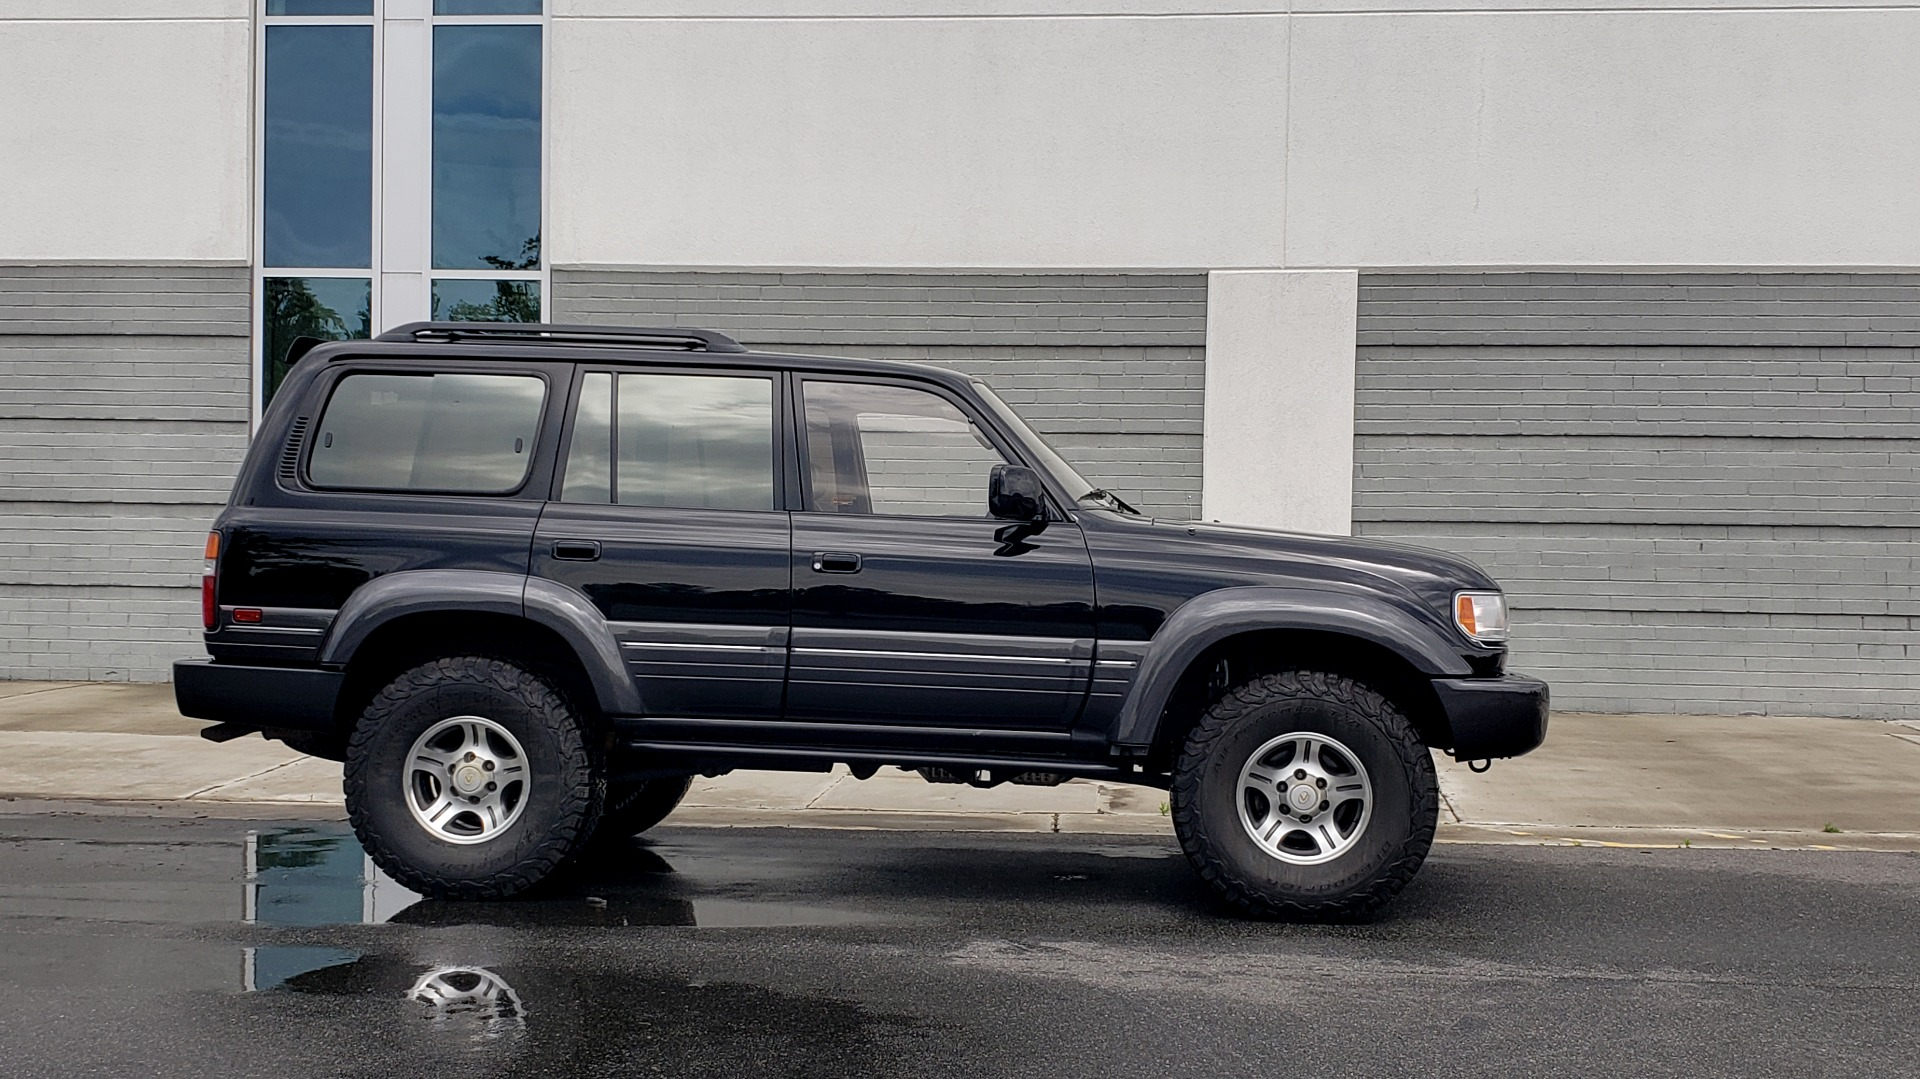 Used 1996 Lexus LX 450 AWD / 4.5L 6-CYL / 4-SPD AUTO / RUNNING BOARDS / NEW BFG TIRES for sale $49,995 at Formula Imports in Charlotte NC 28227 7